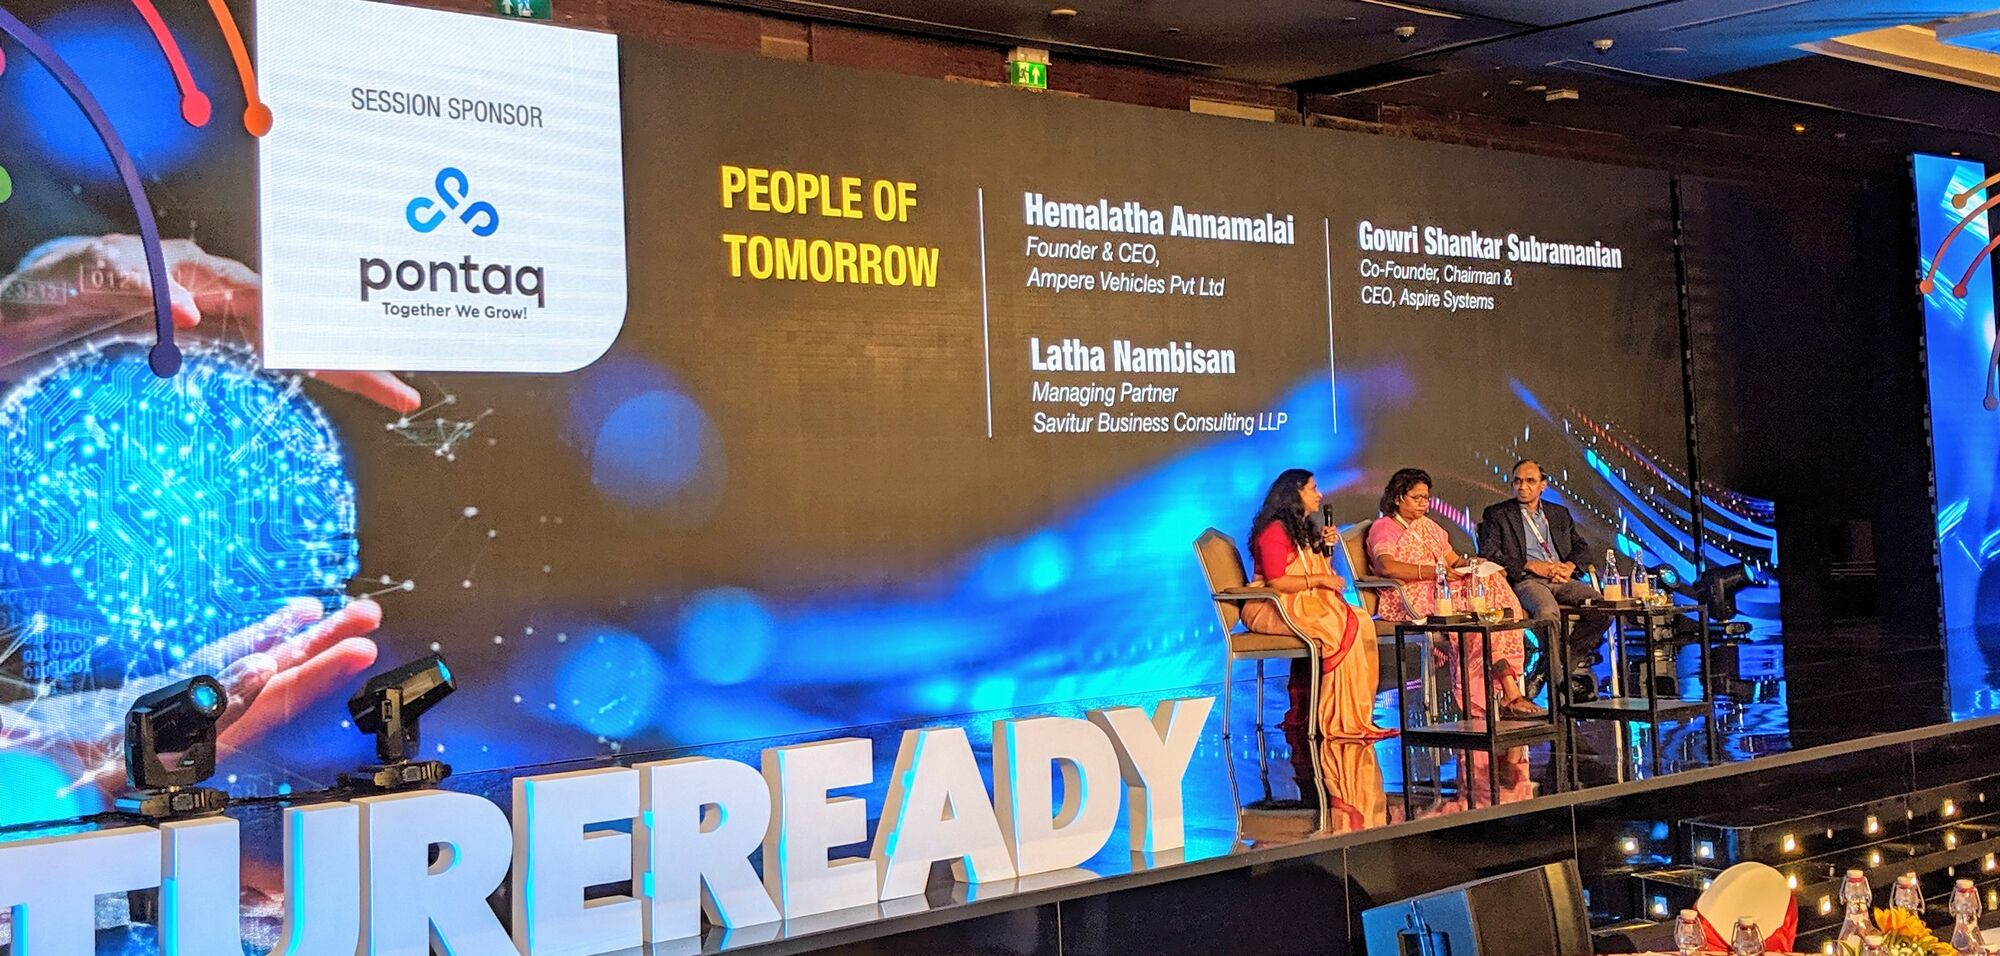 """People of tomorrow"" panel hosted by Ms Hemalatha Annamalai"